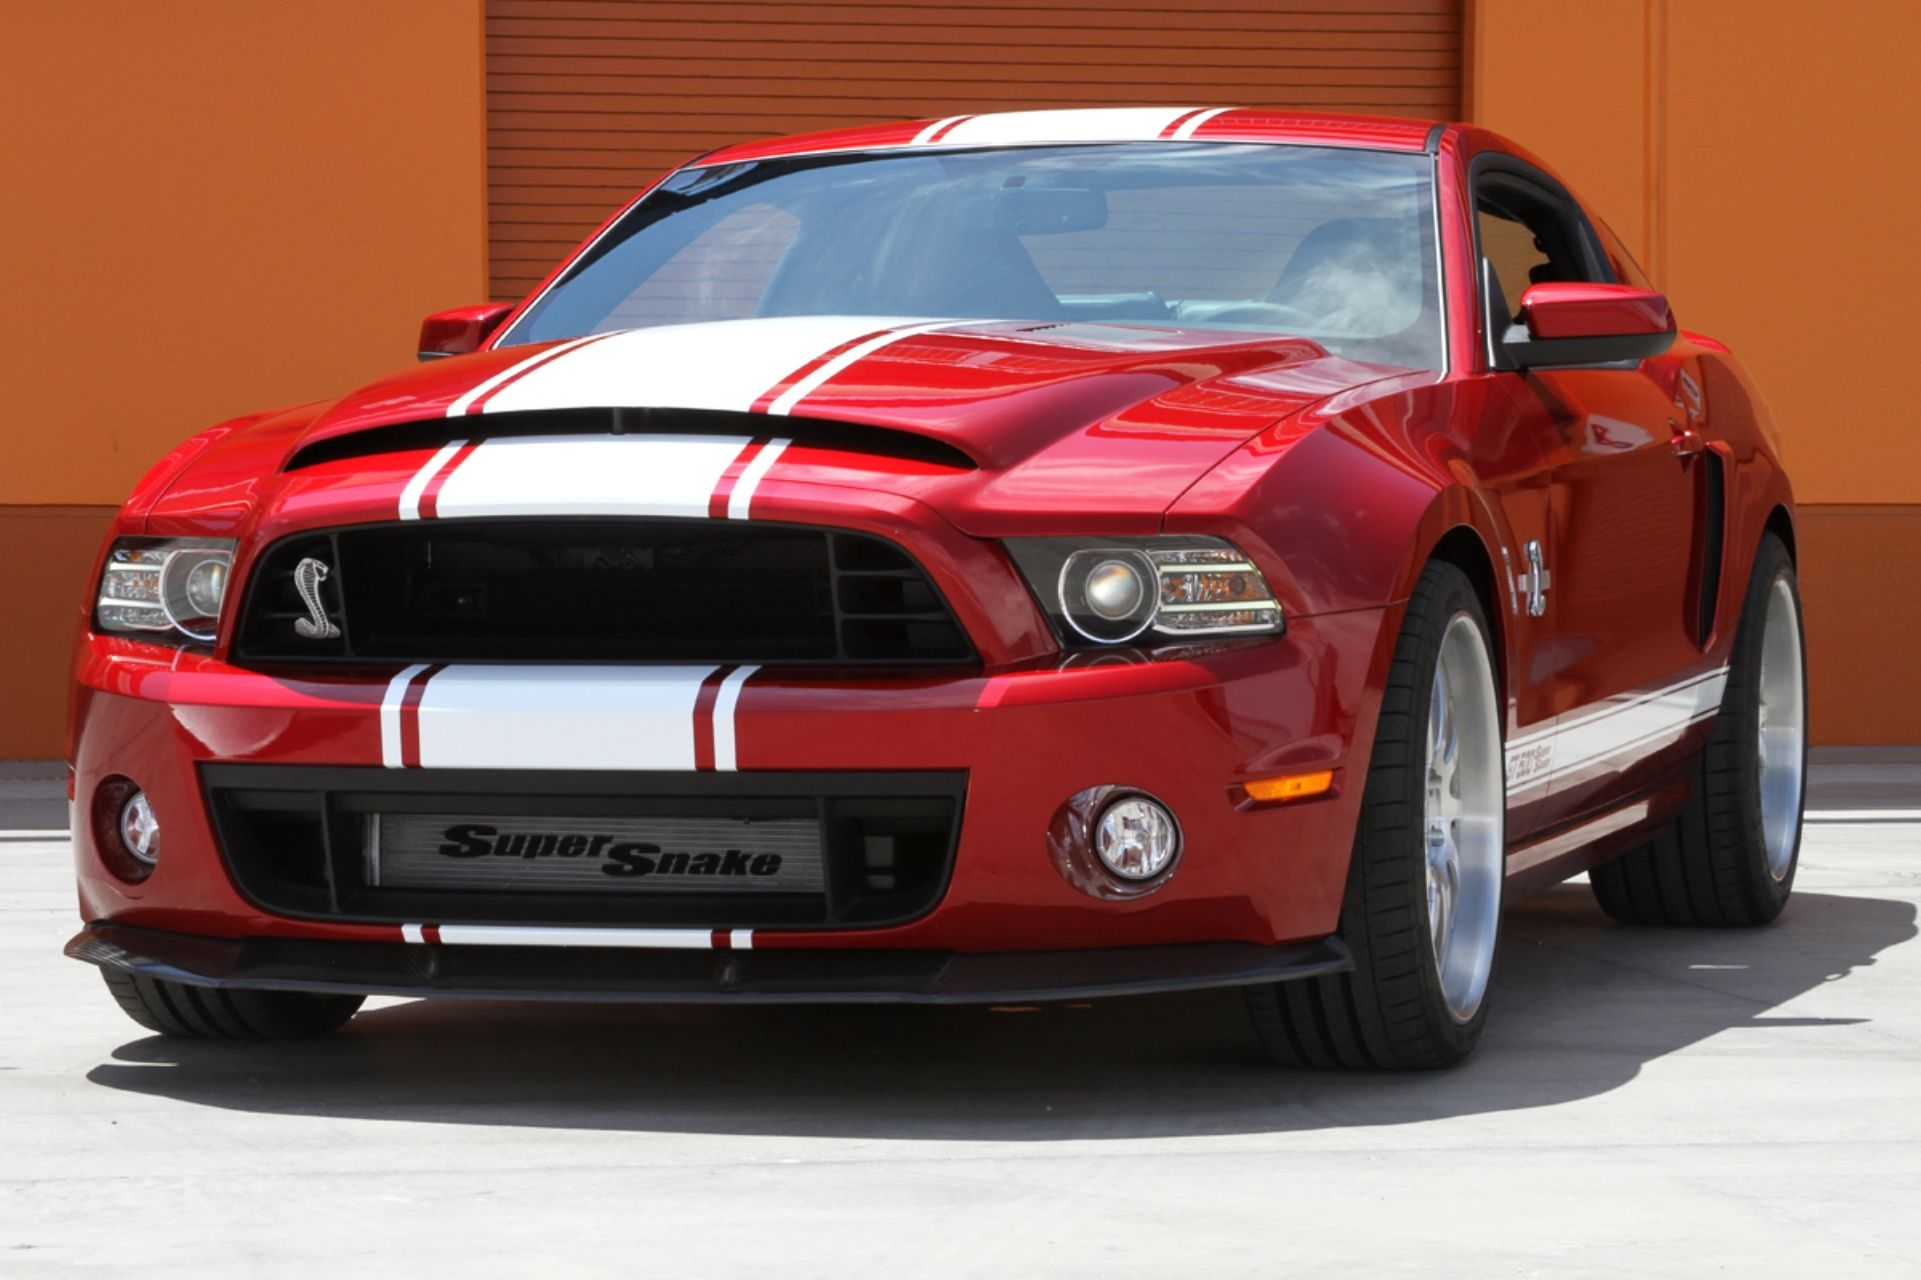 Ford mustang shelby cobra gt500 super snake looking at these mustangs i want so badly